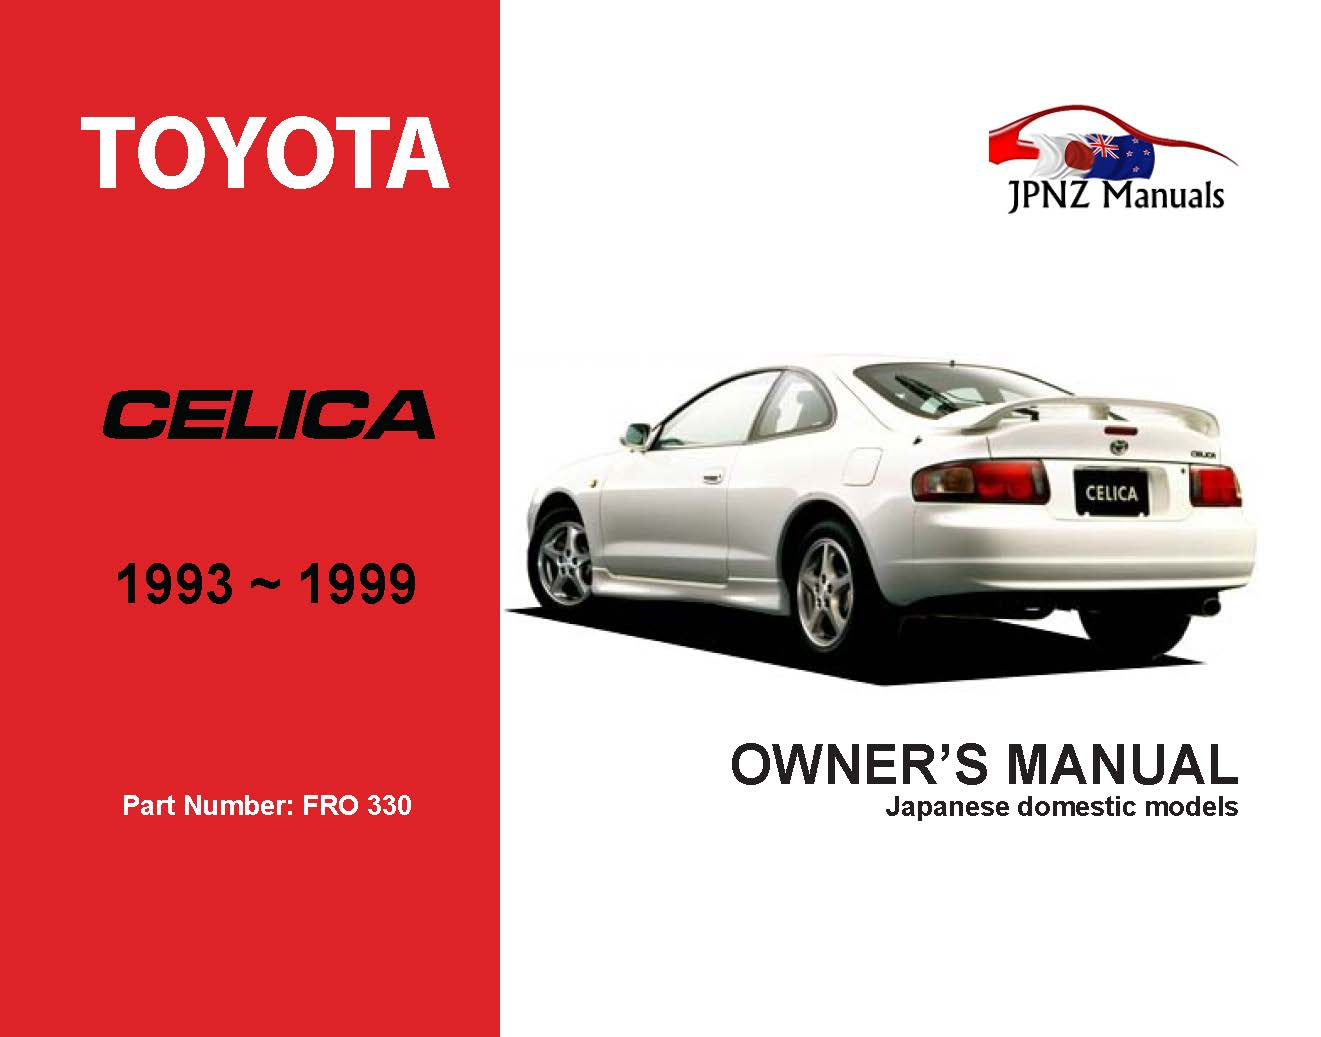 Toyota - Celica Car Owners User Manual In English   1993 - 1999